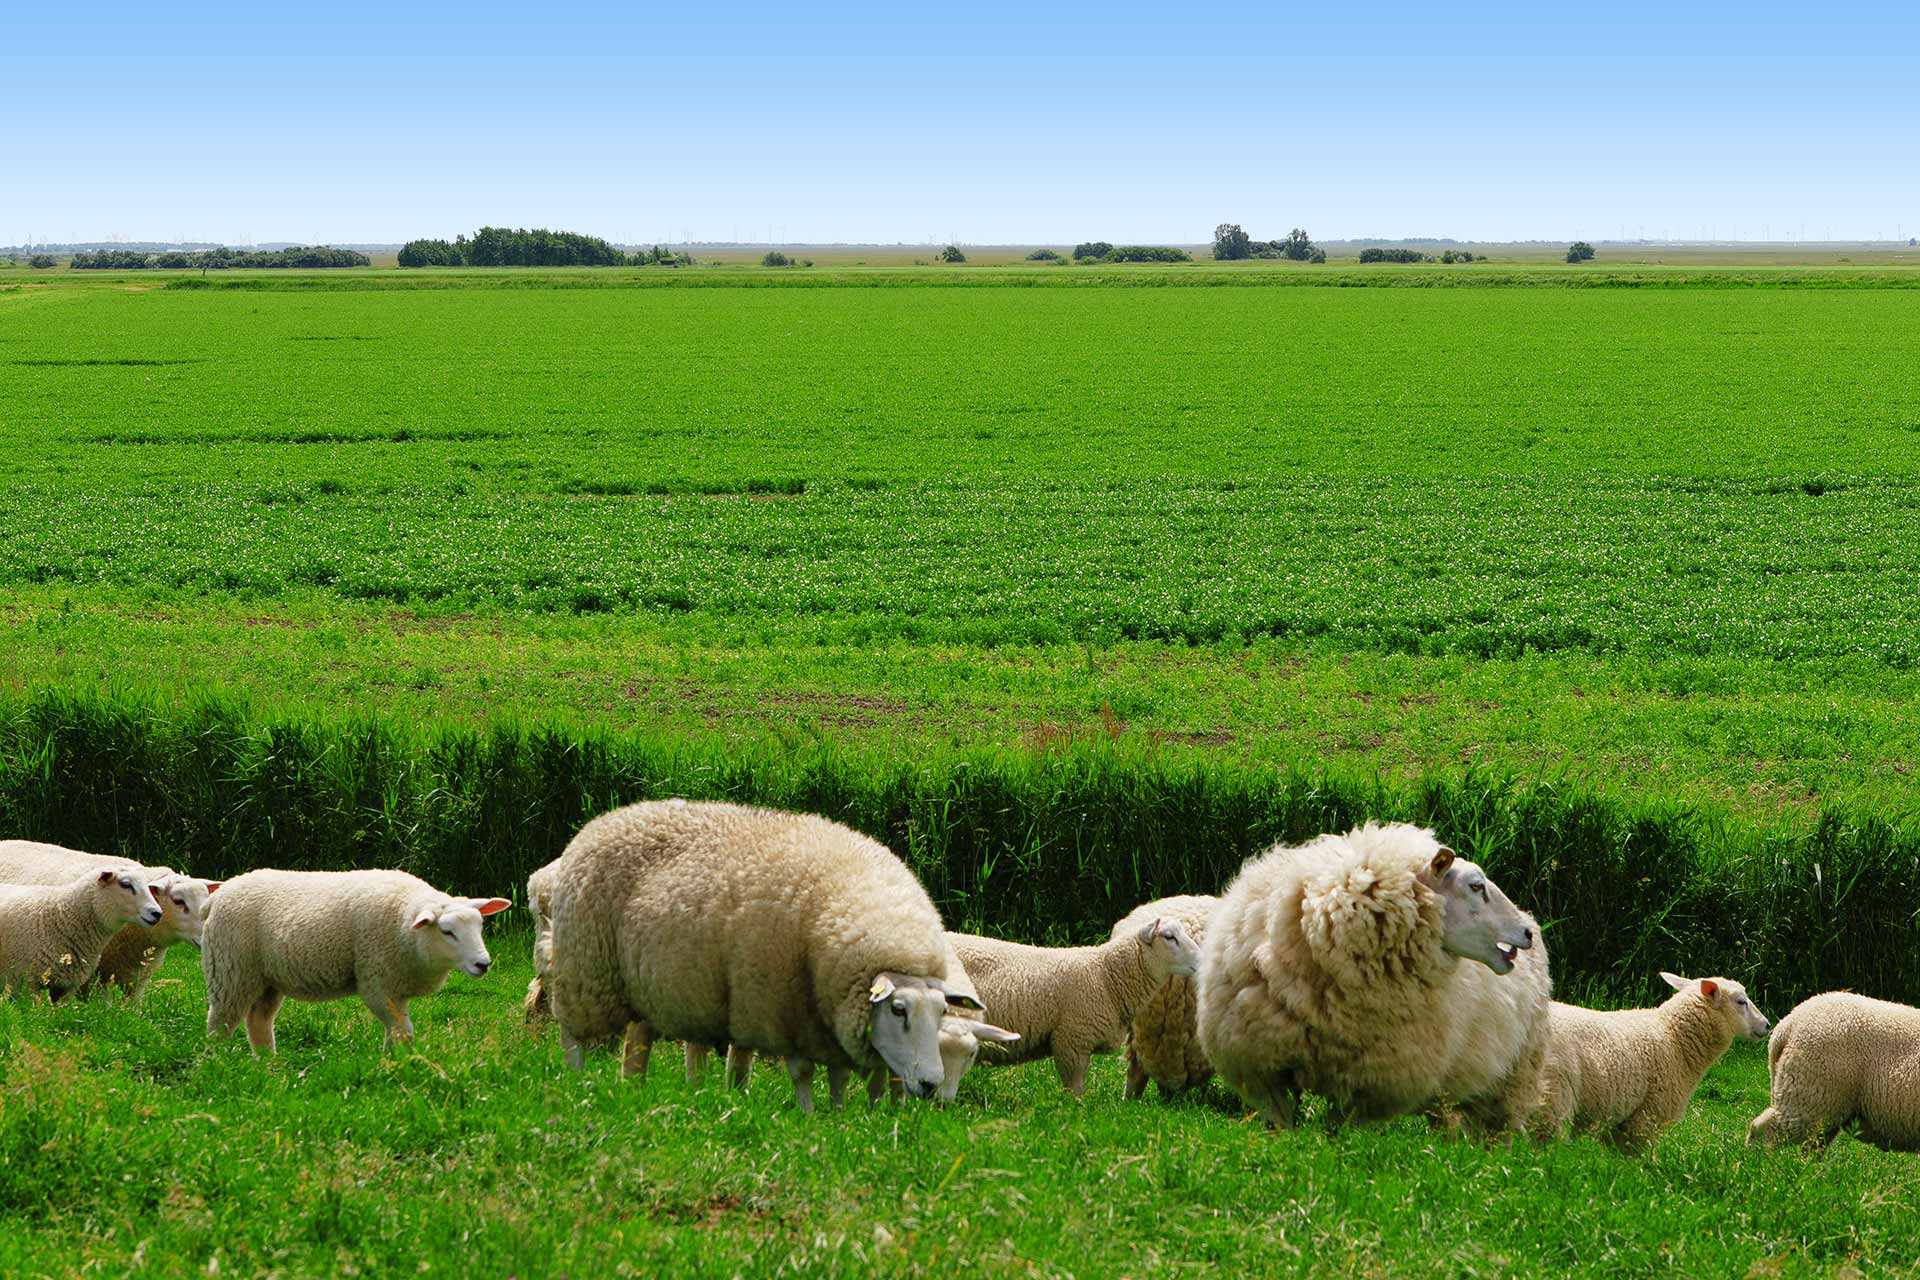 Agriculture - Sheeps grazing next to a peas field